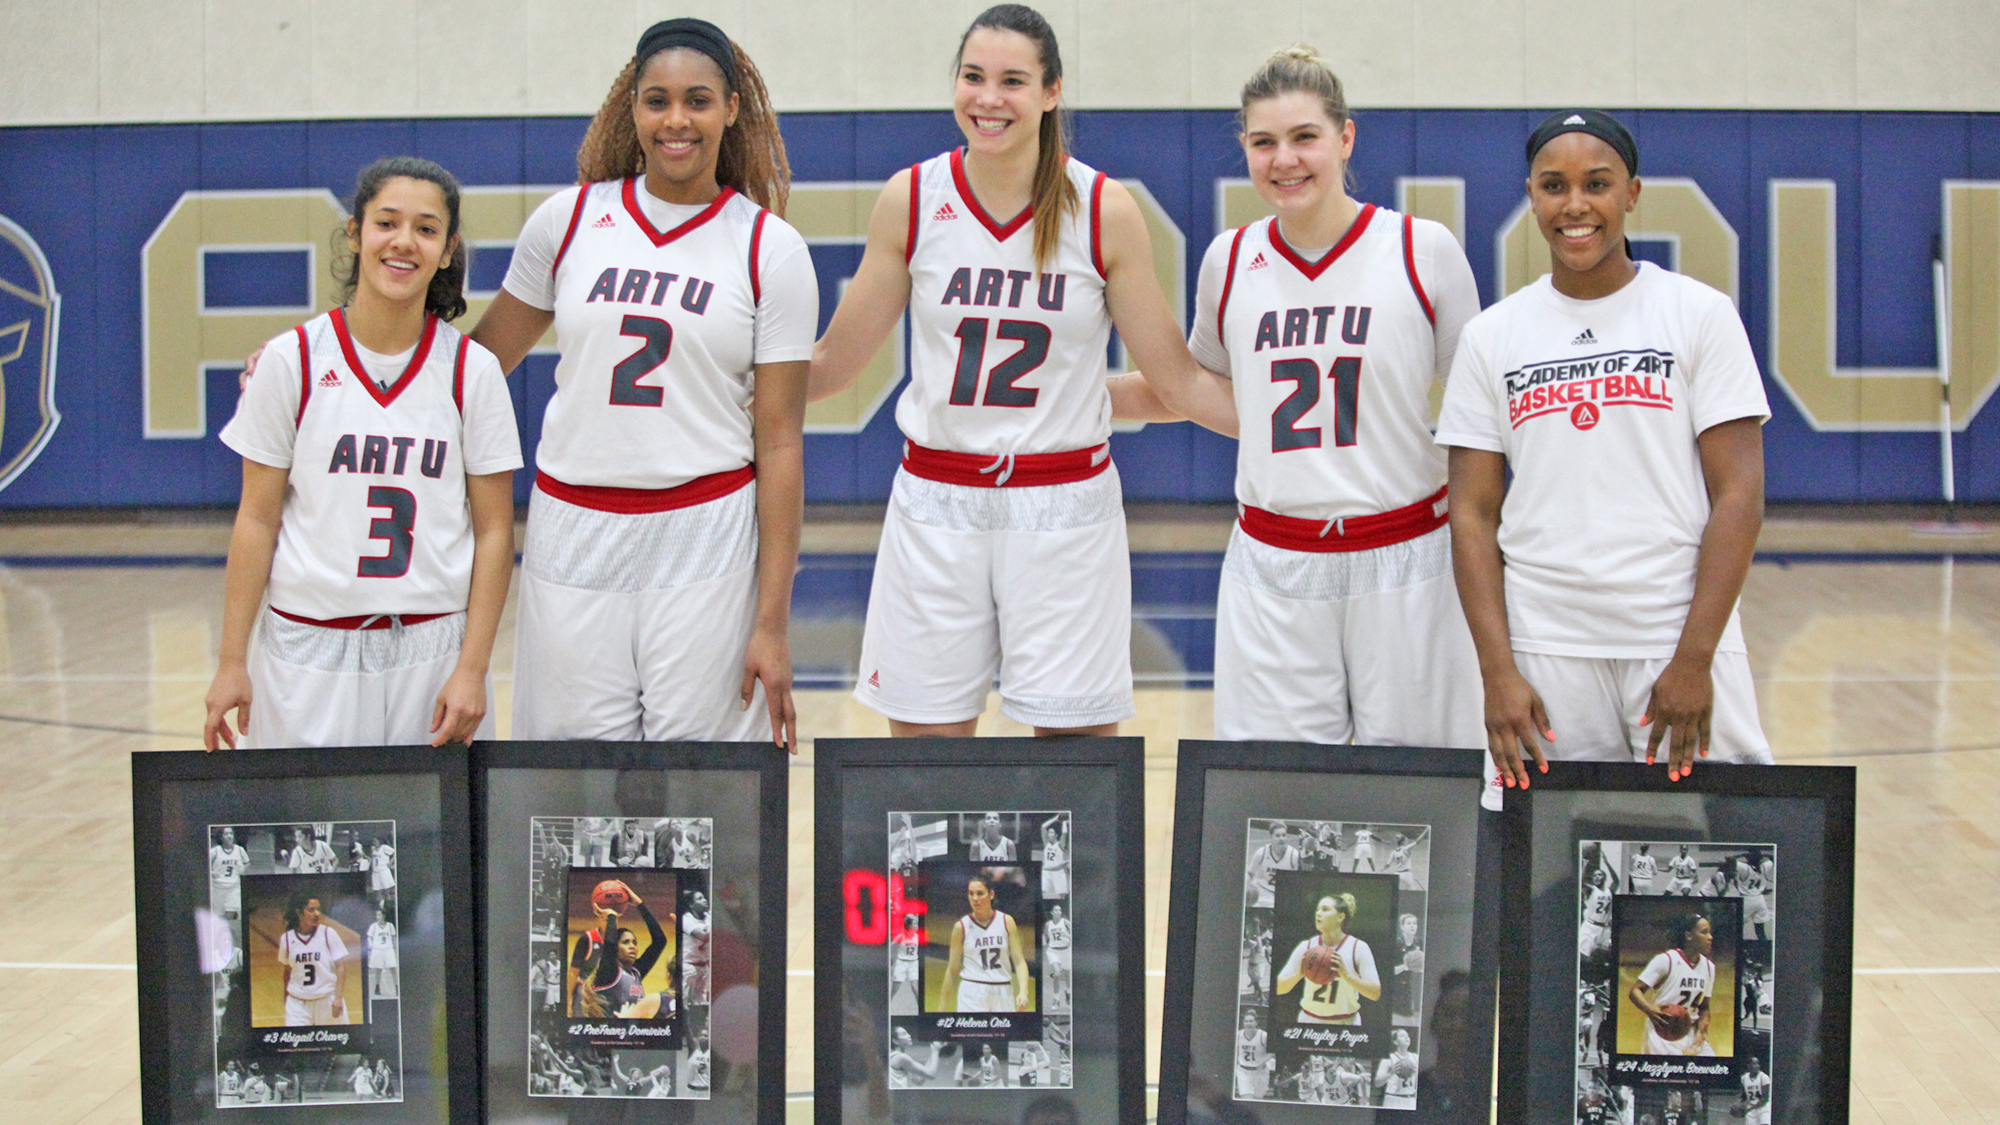 ART U Sends Seniors Out With 72-69 Victory Over Concordia